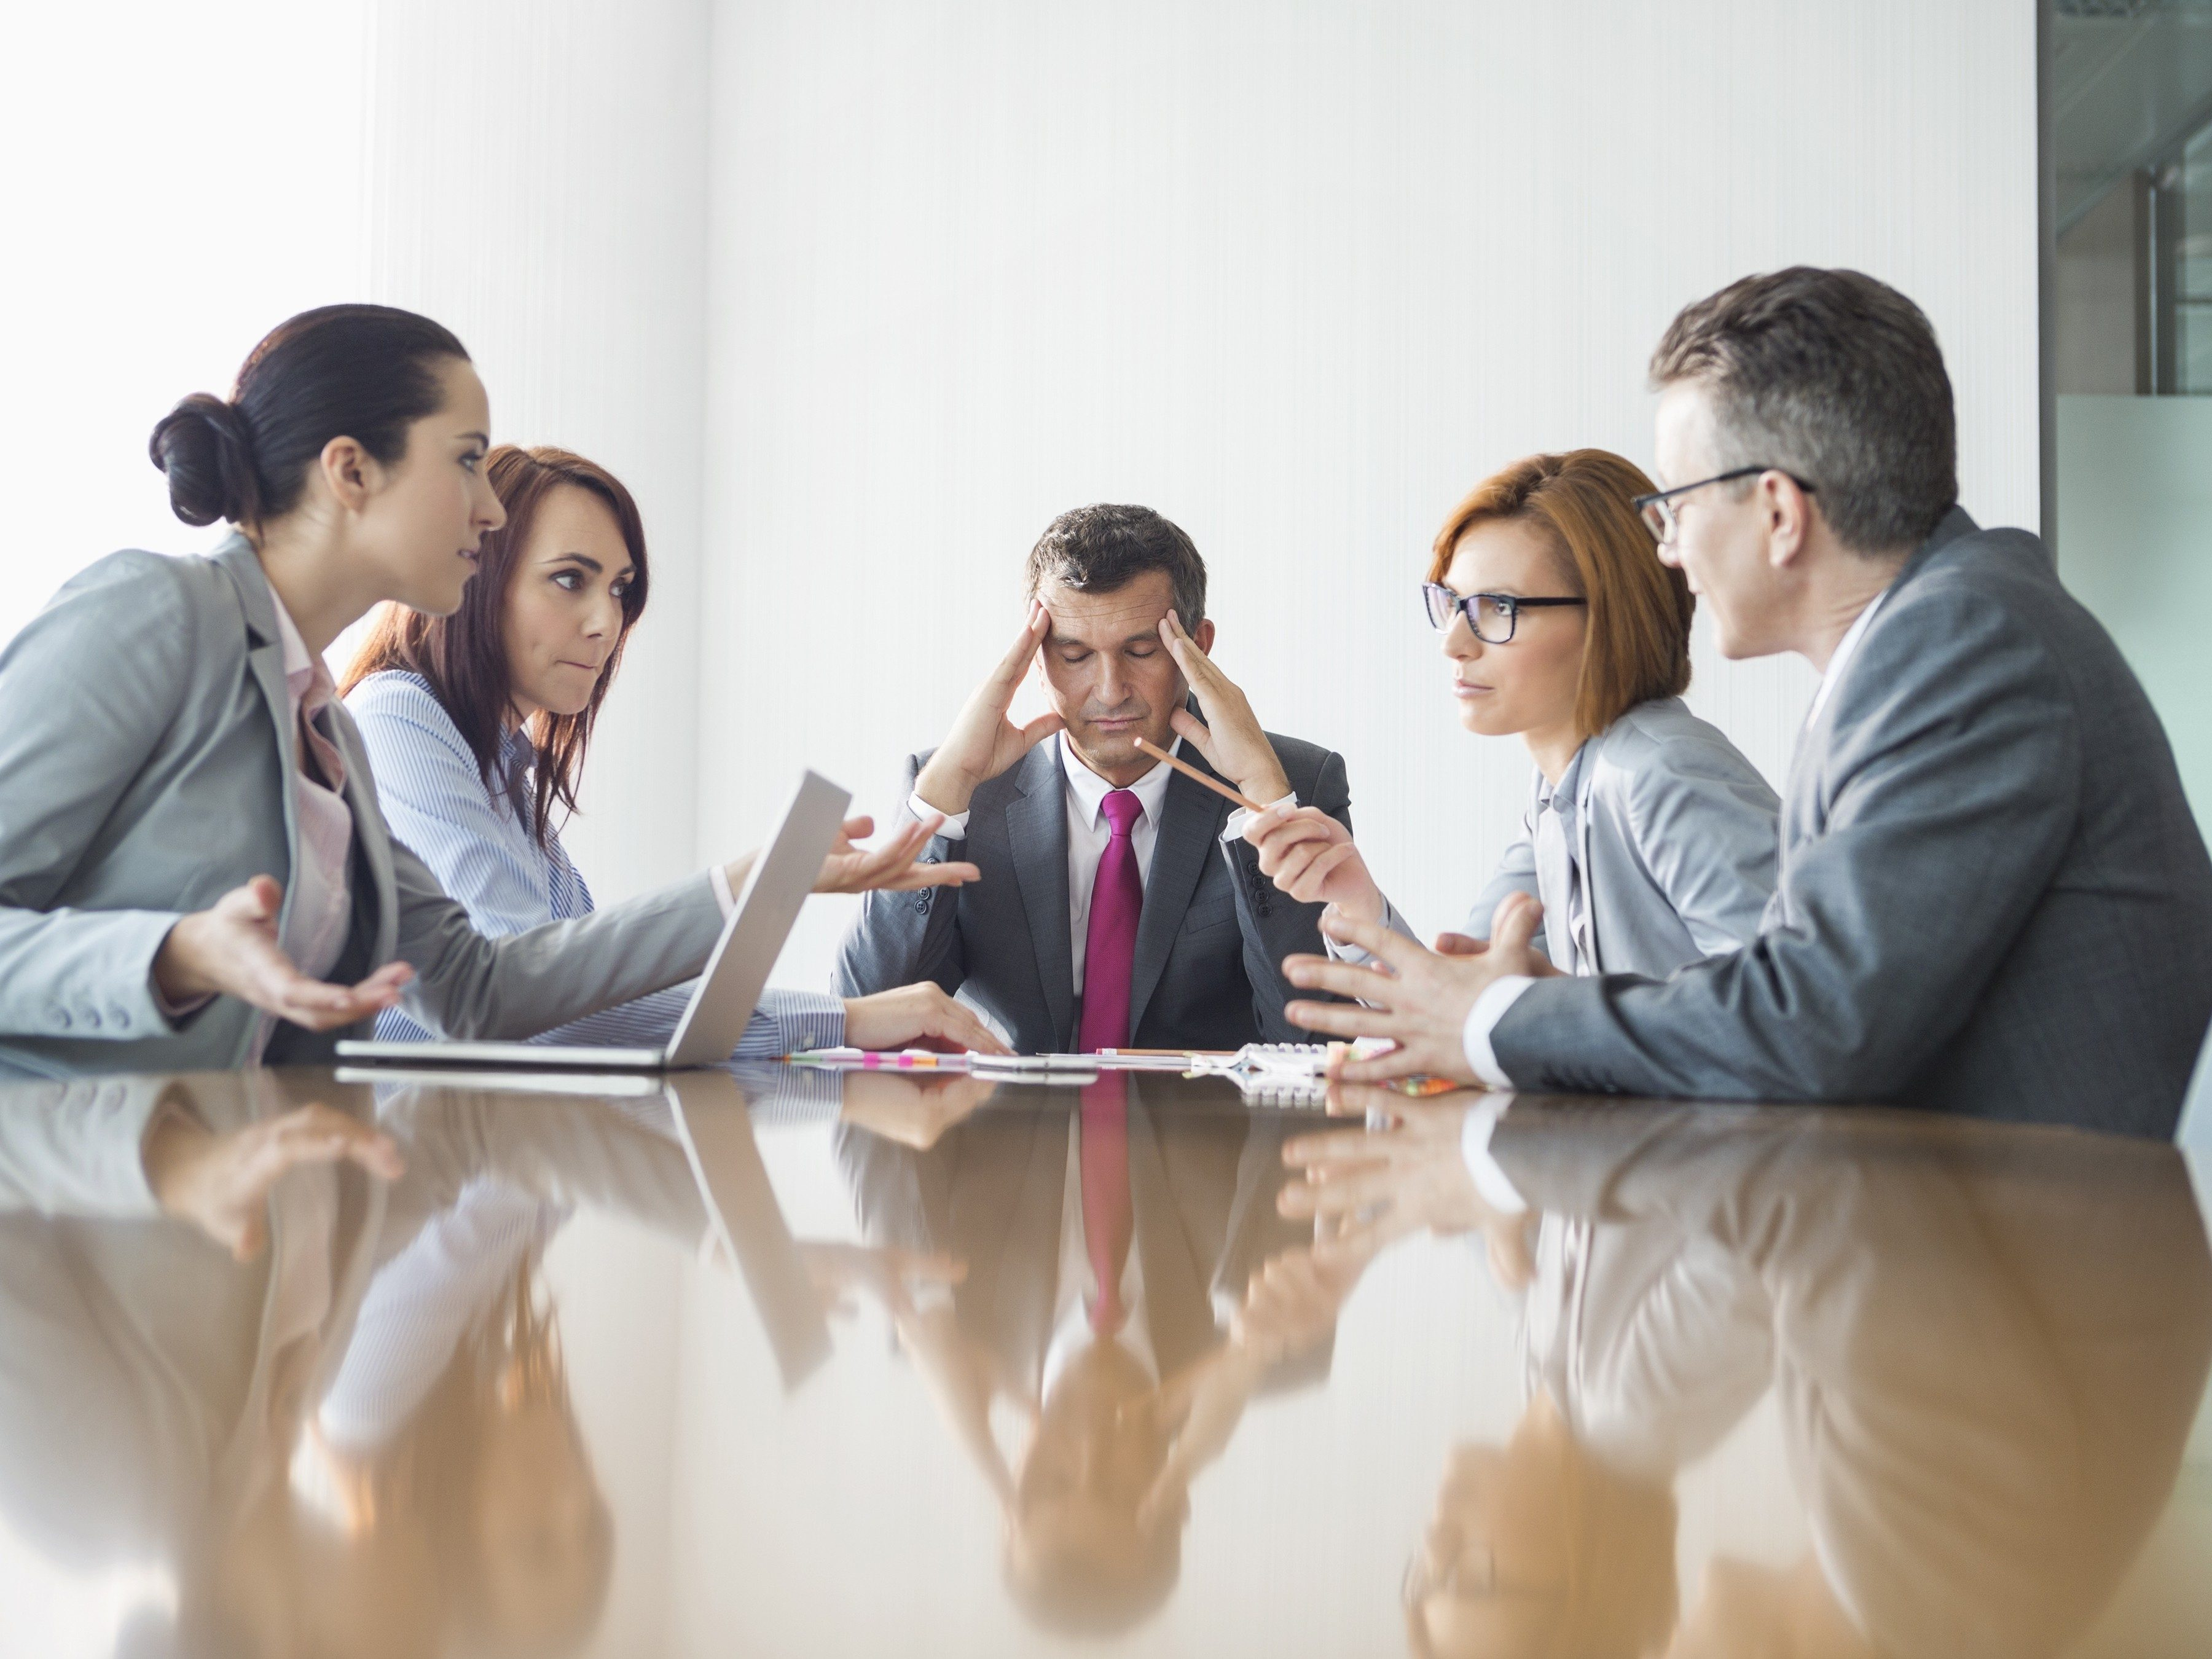 7. Learn How to Deal With Difficult Colleagues